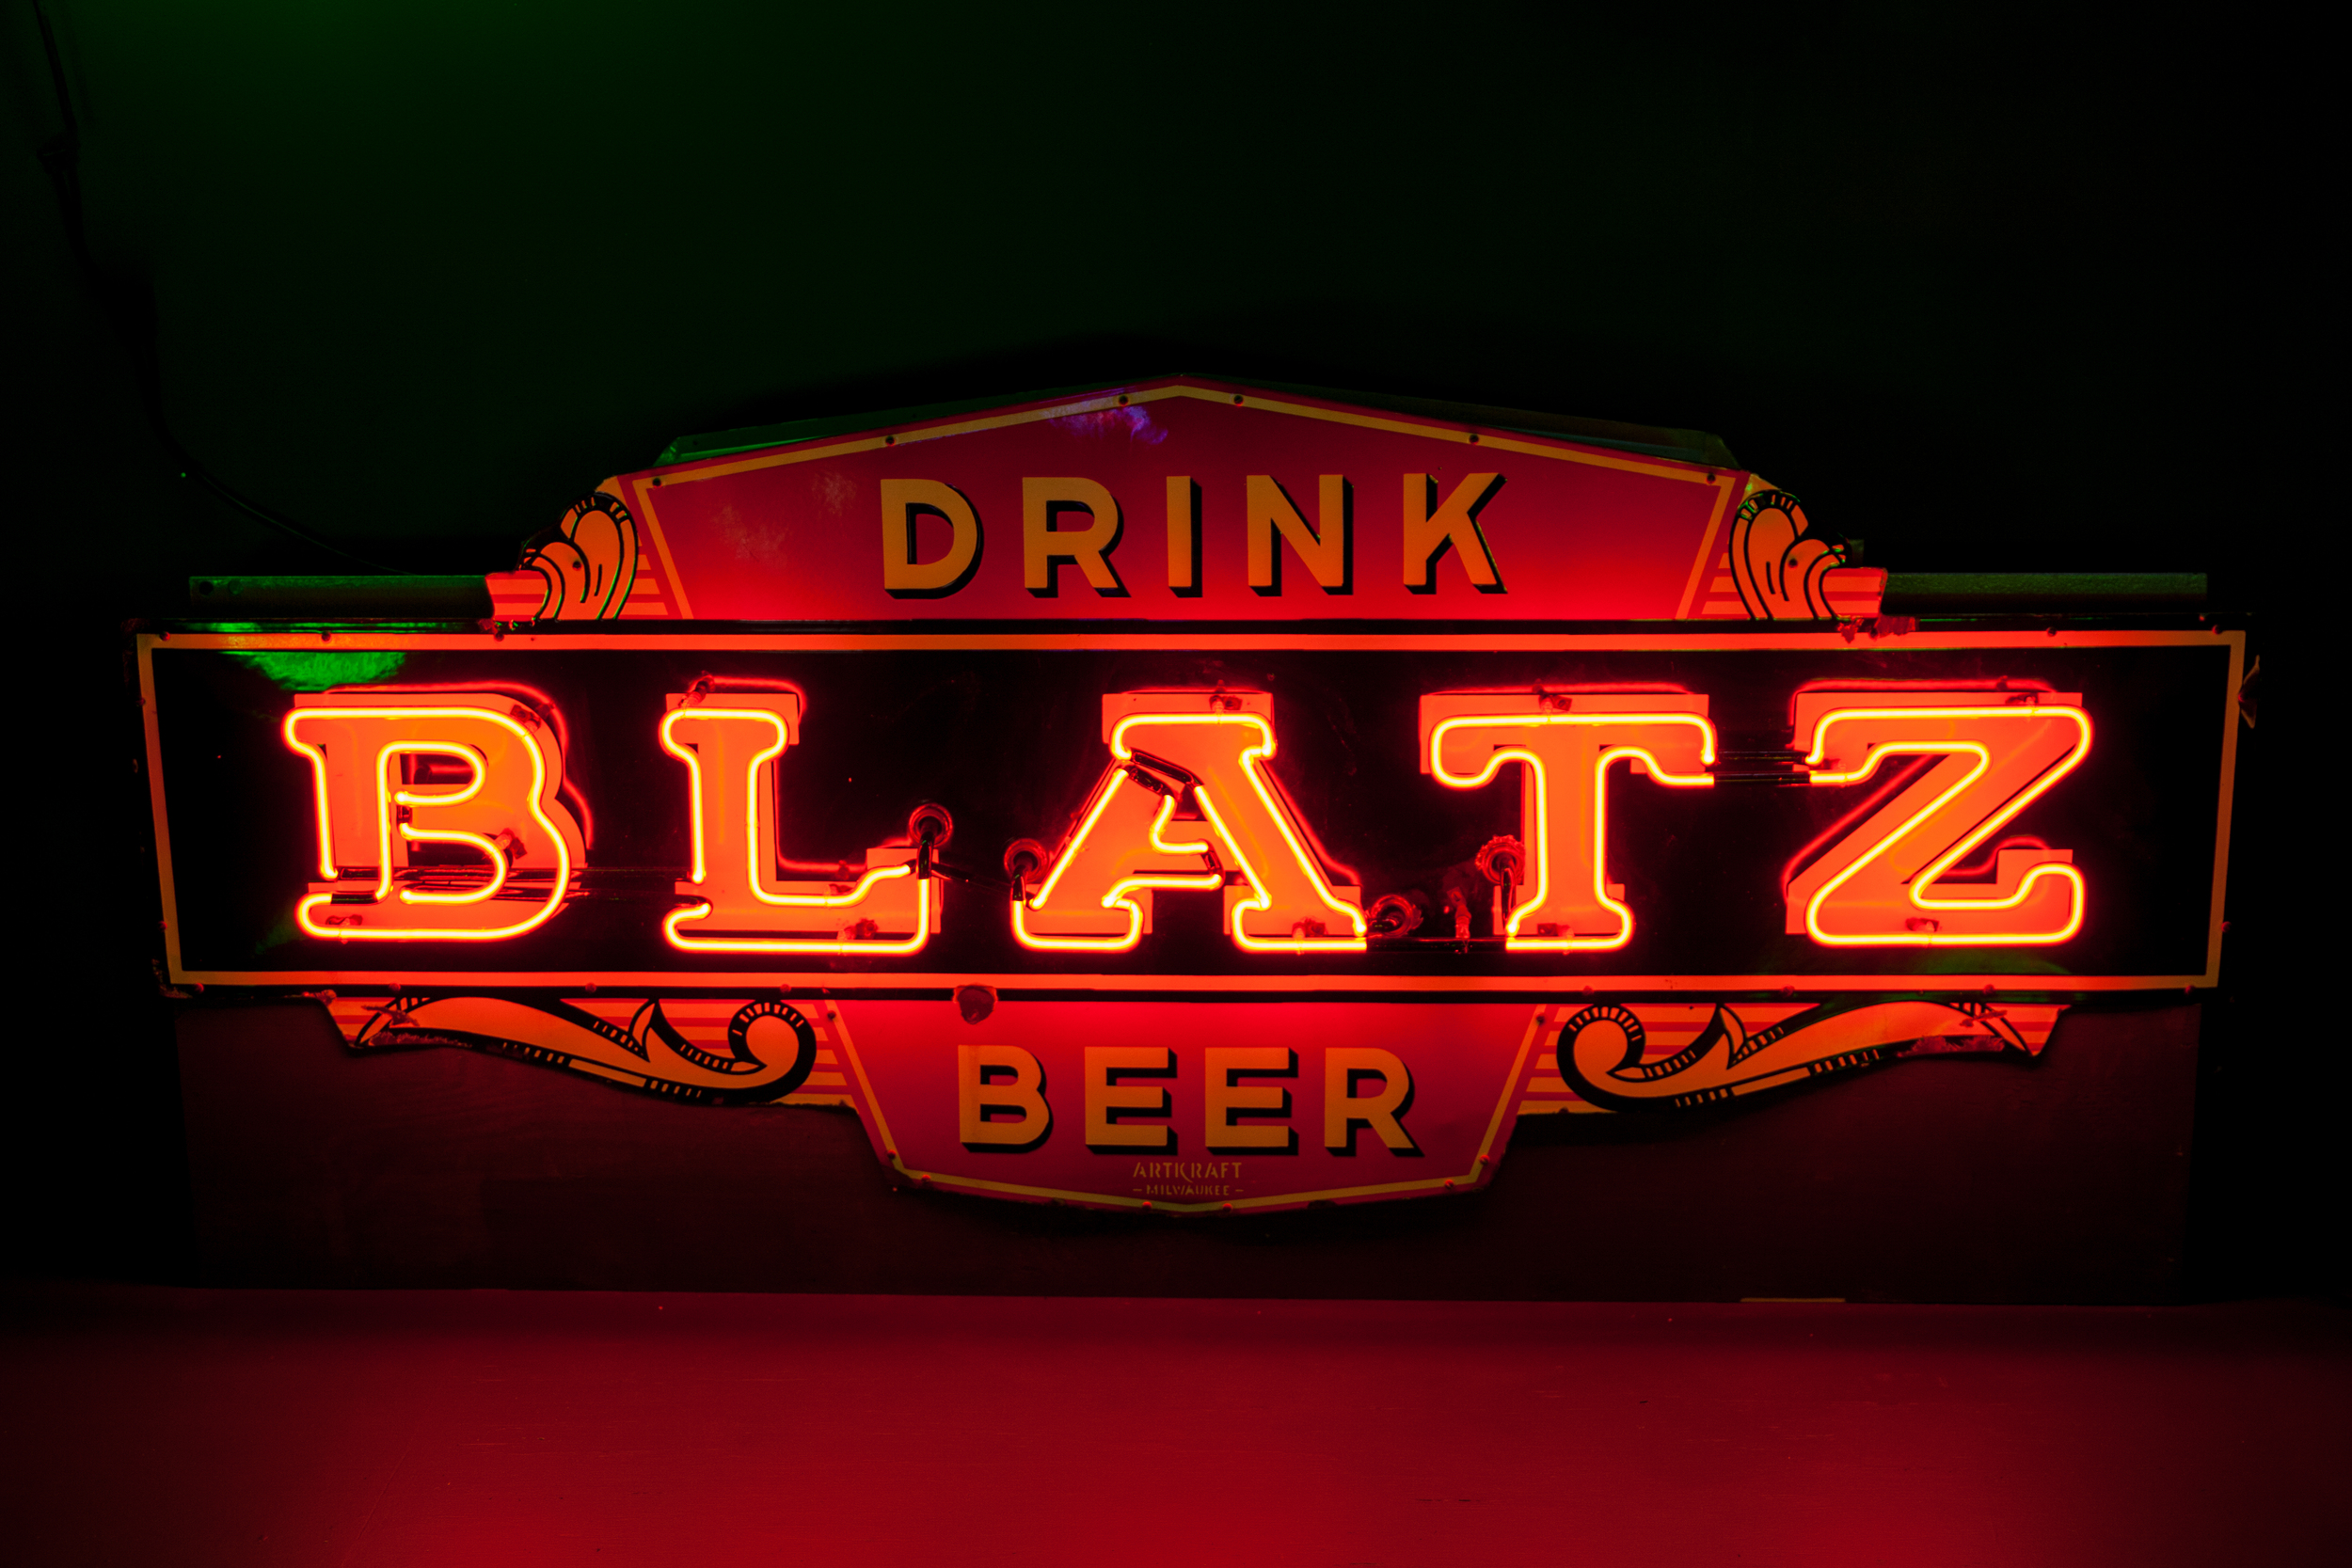 Blatz Beer Neon and Porcelain Enamel Sign.